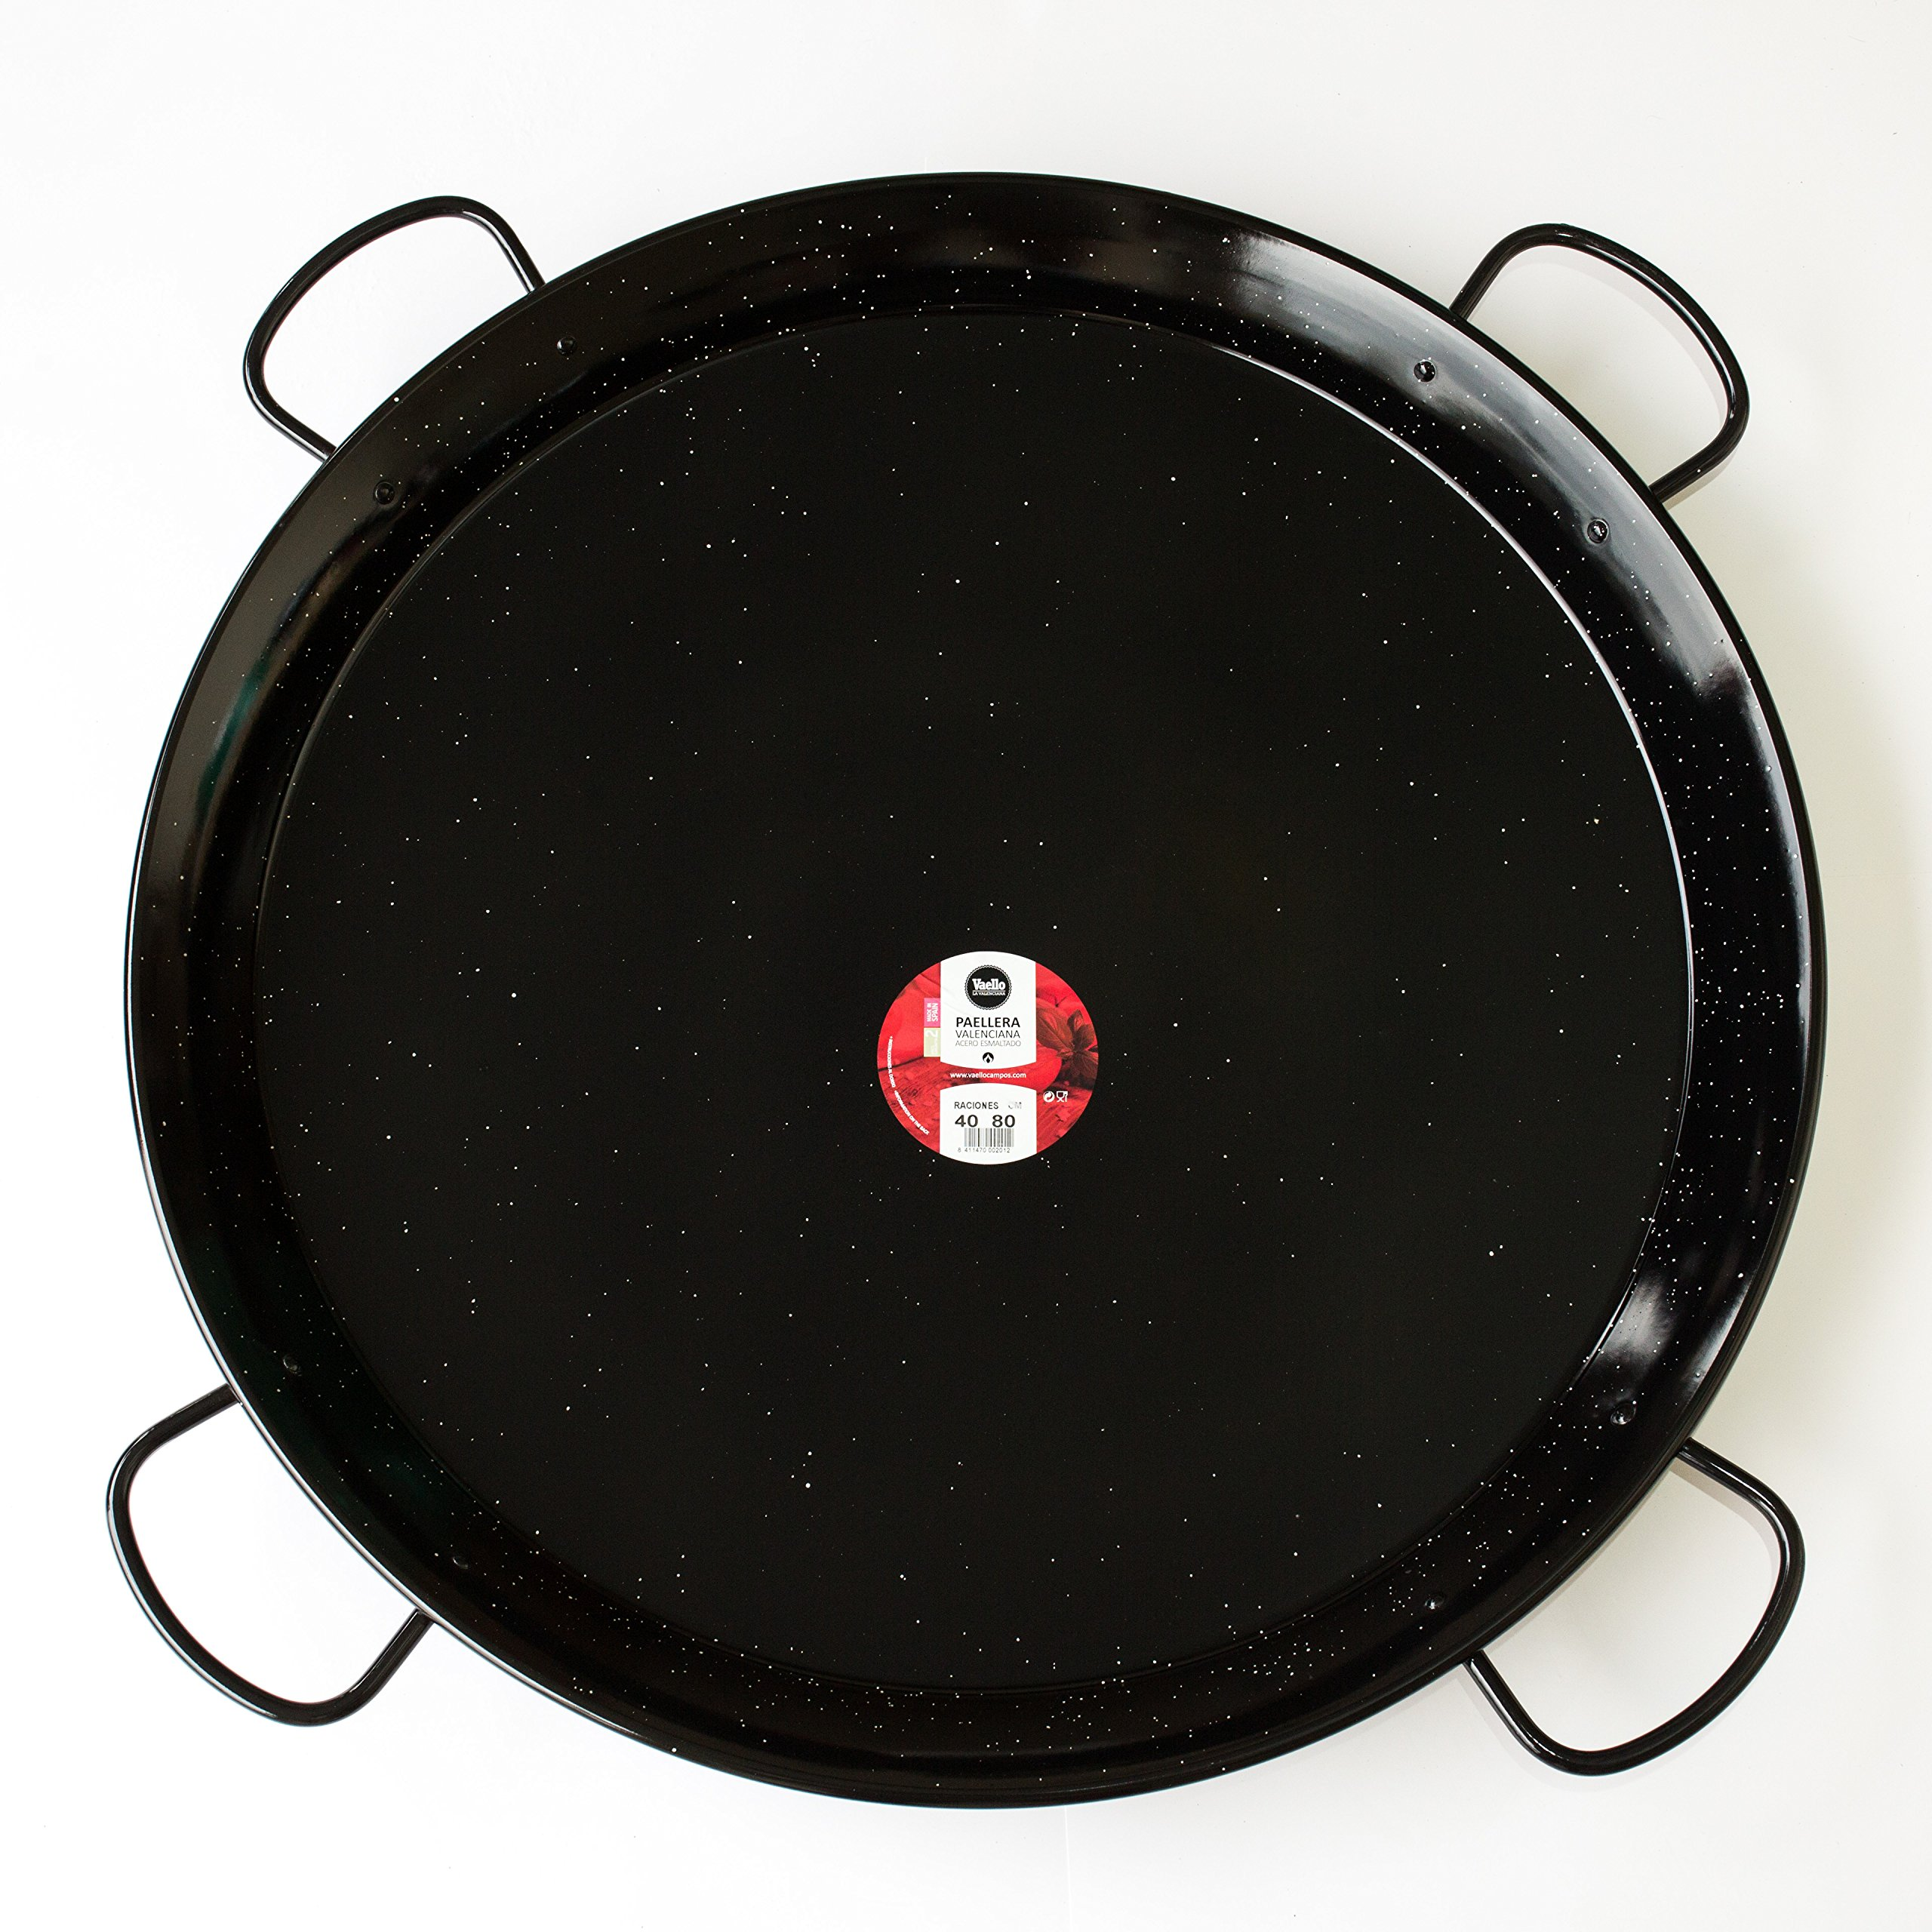 Paella Pan Enamelled Carbon Steel 32Inches / 80cm / up to 40 Servings / 4 handles (Nonstick)